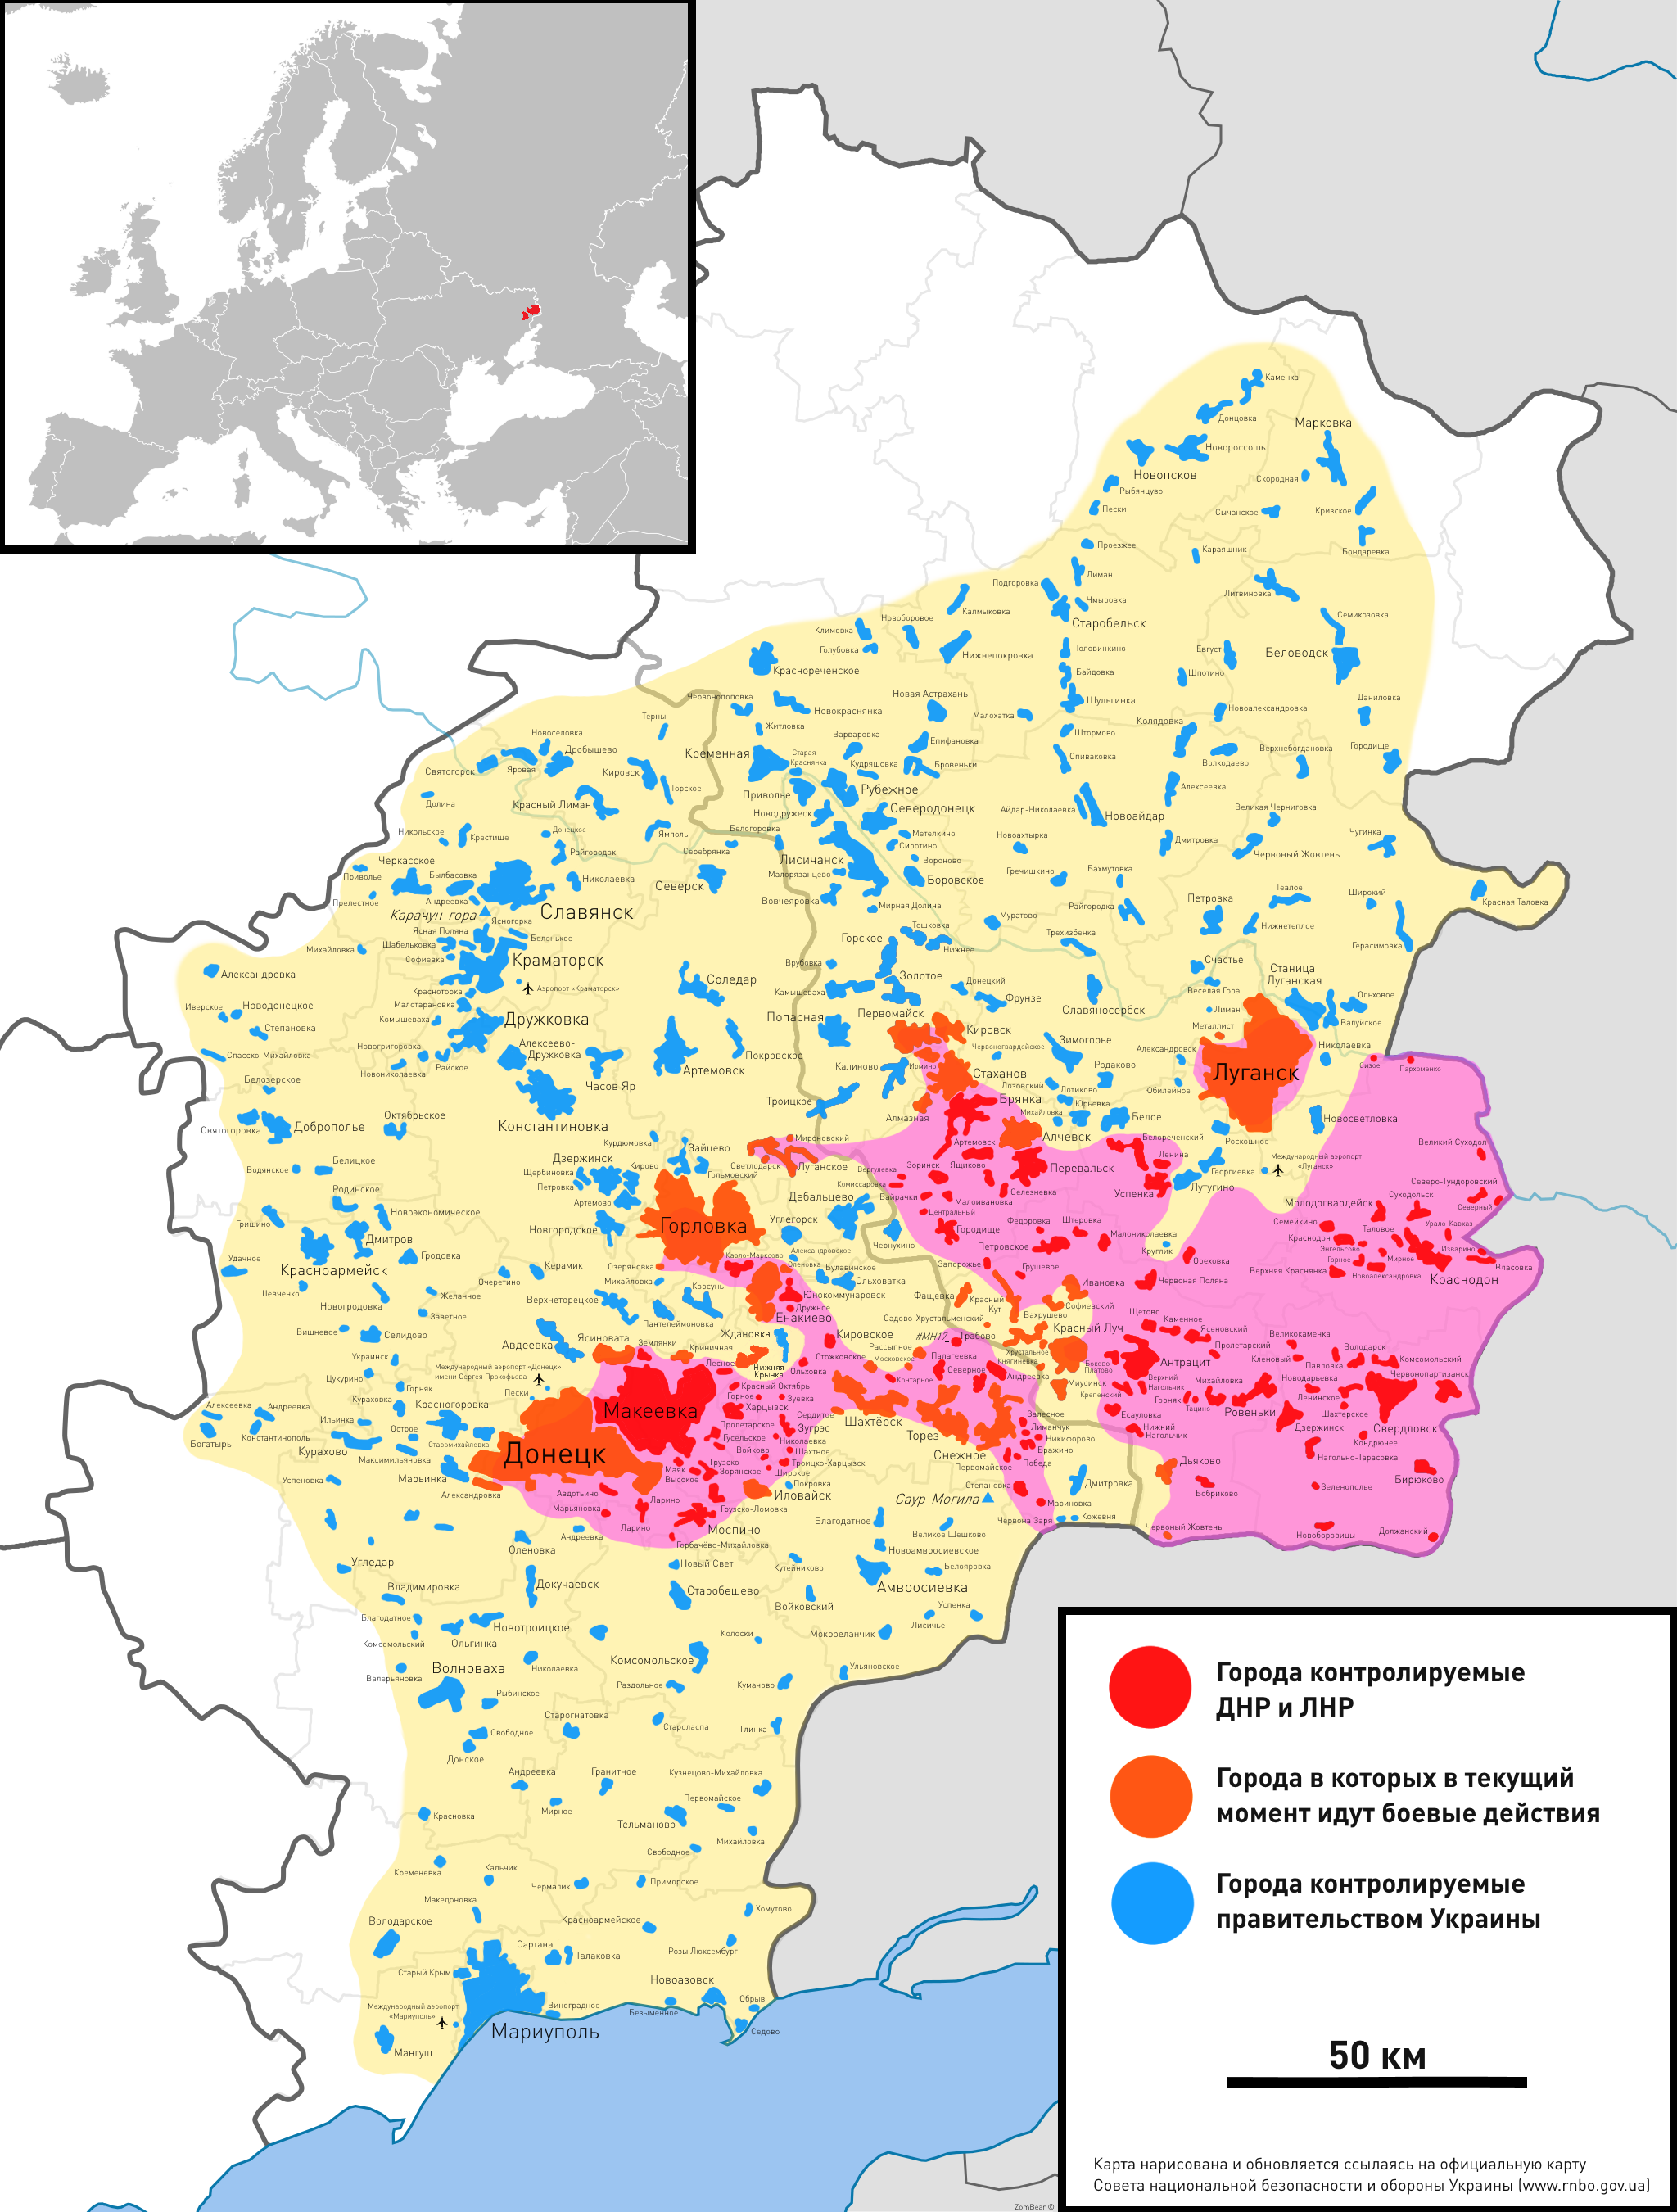 http://upload.wikimedia.org/wikipedia/commons/b/b0/East_Ukraine_conflict.png